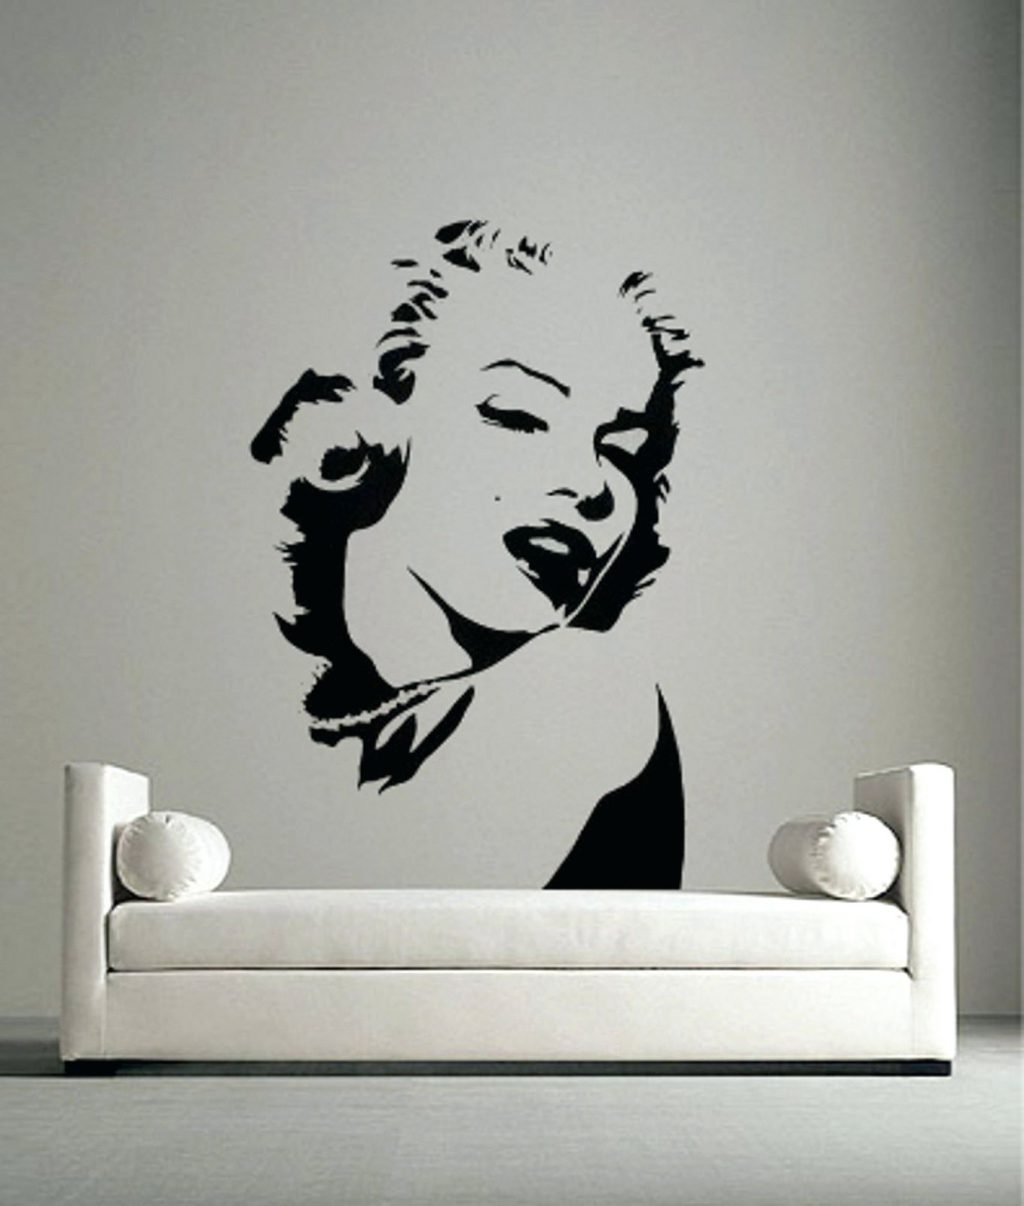 Well Known Stencil Wall Art For Wall Arts ~ Stencil Wall Art Australia Stencil Wall Art Tree (View 12 of 15)